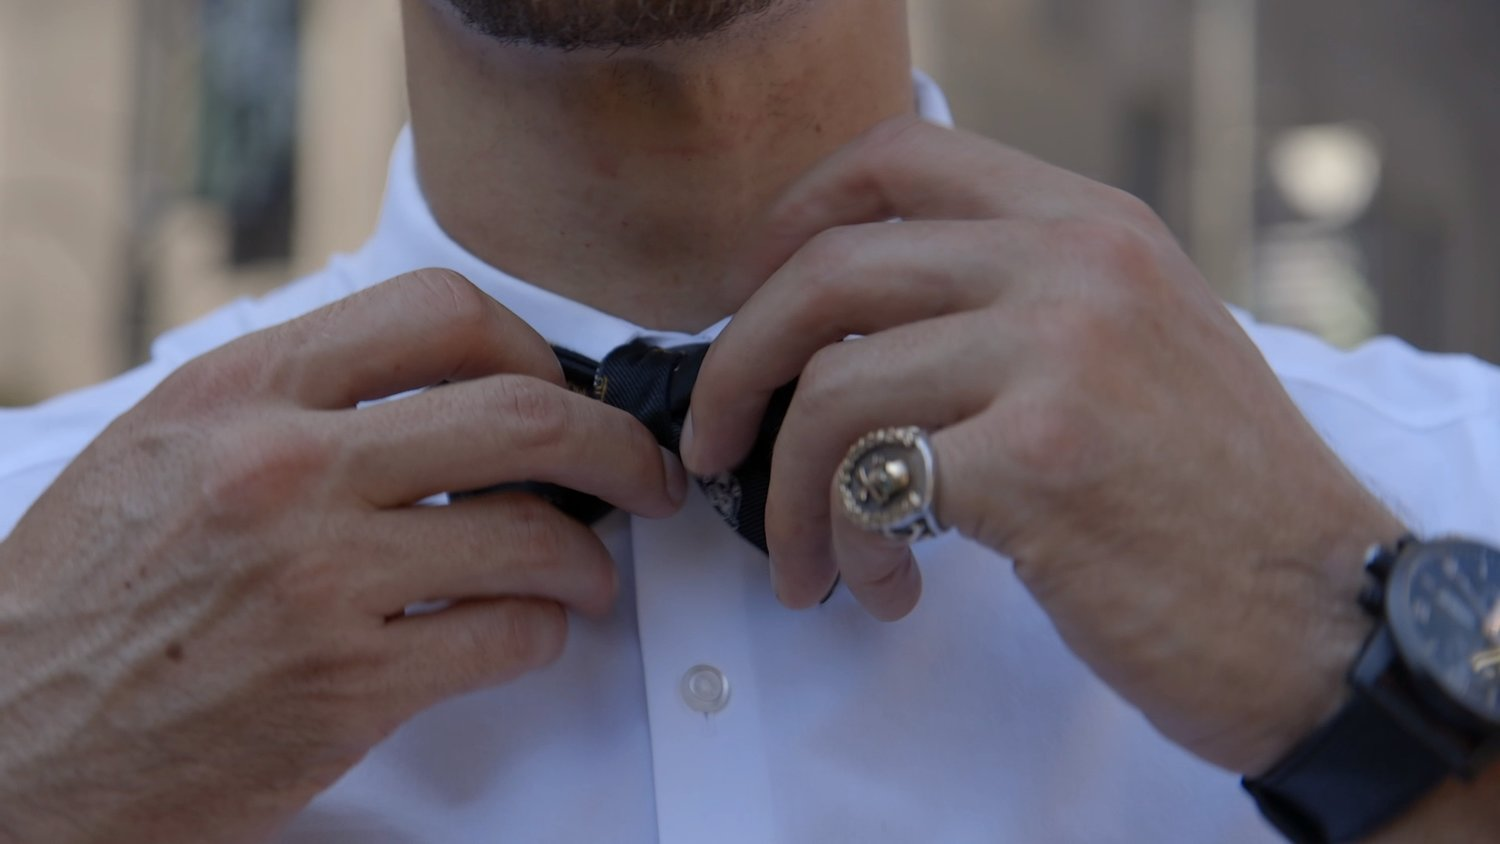 MAN ADJUSTING BOWTIE